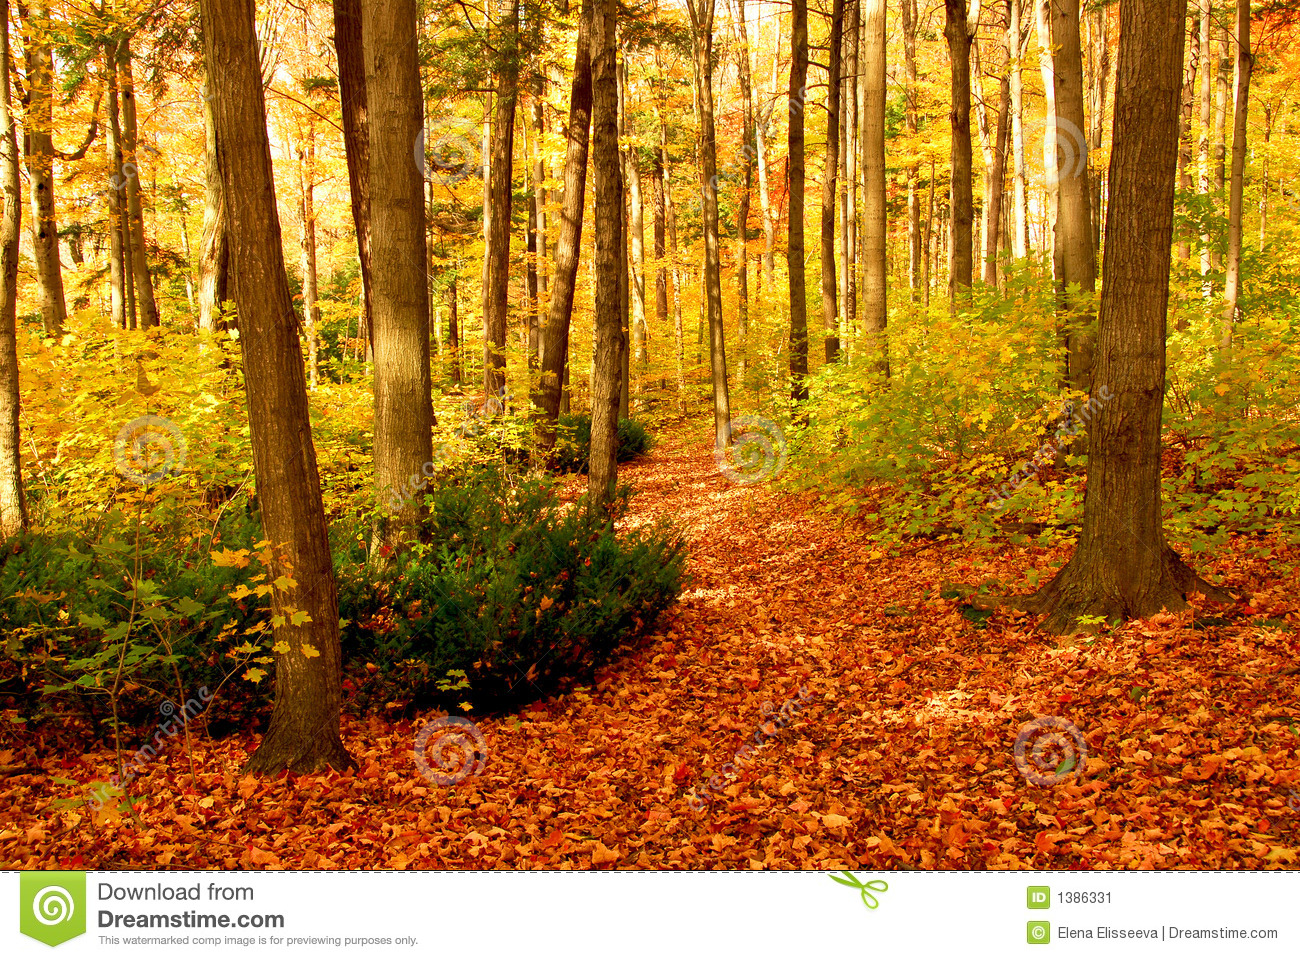 Fall Leaves Desktop Wallpaper Fall Forest Landscape Stock Image Image Of Ground Autumn